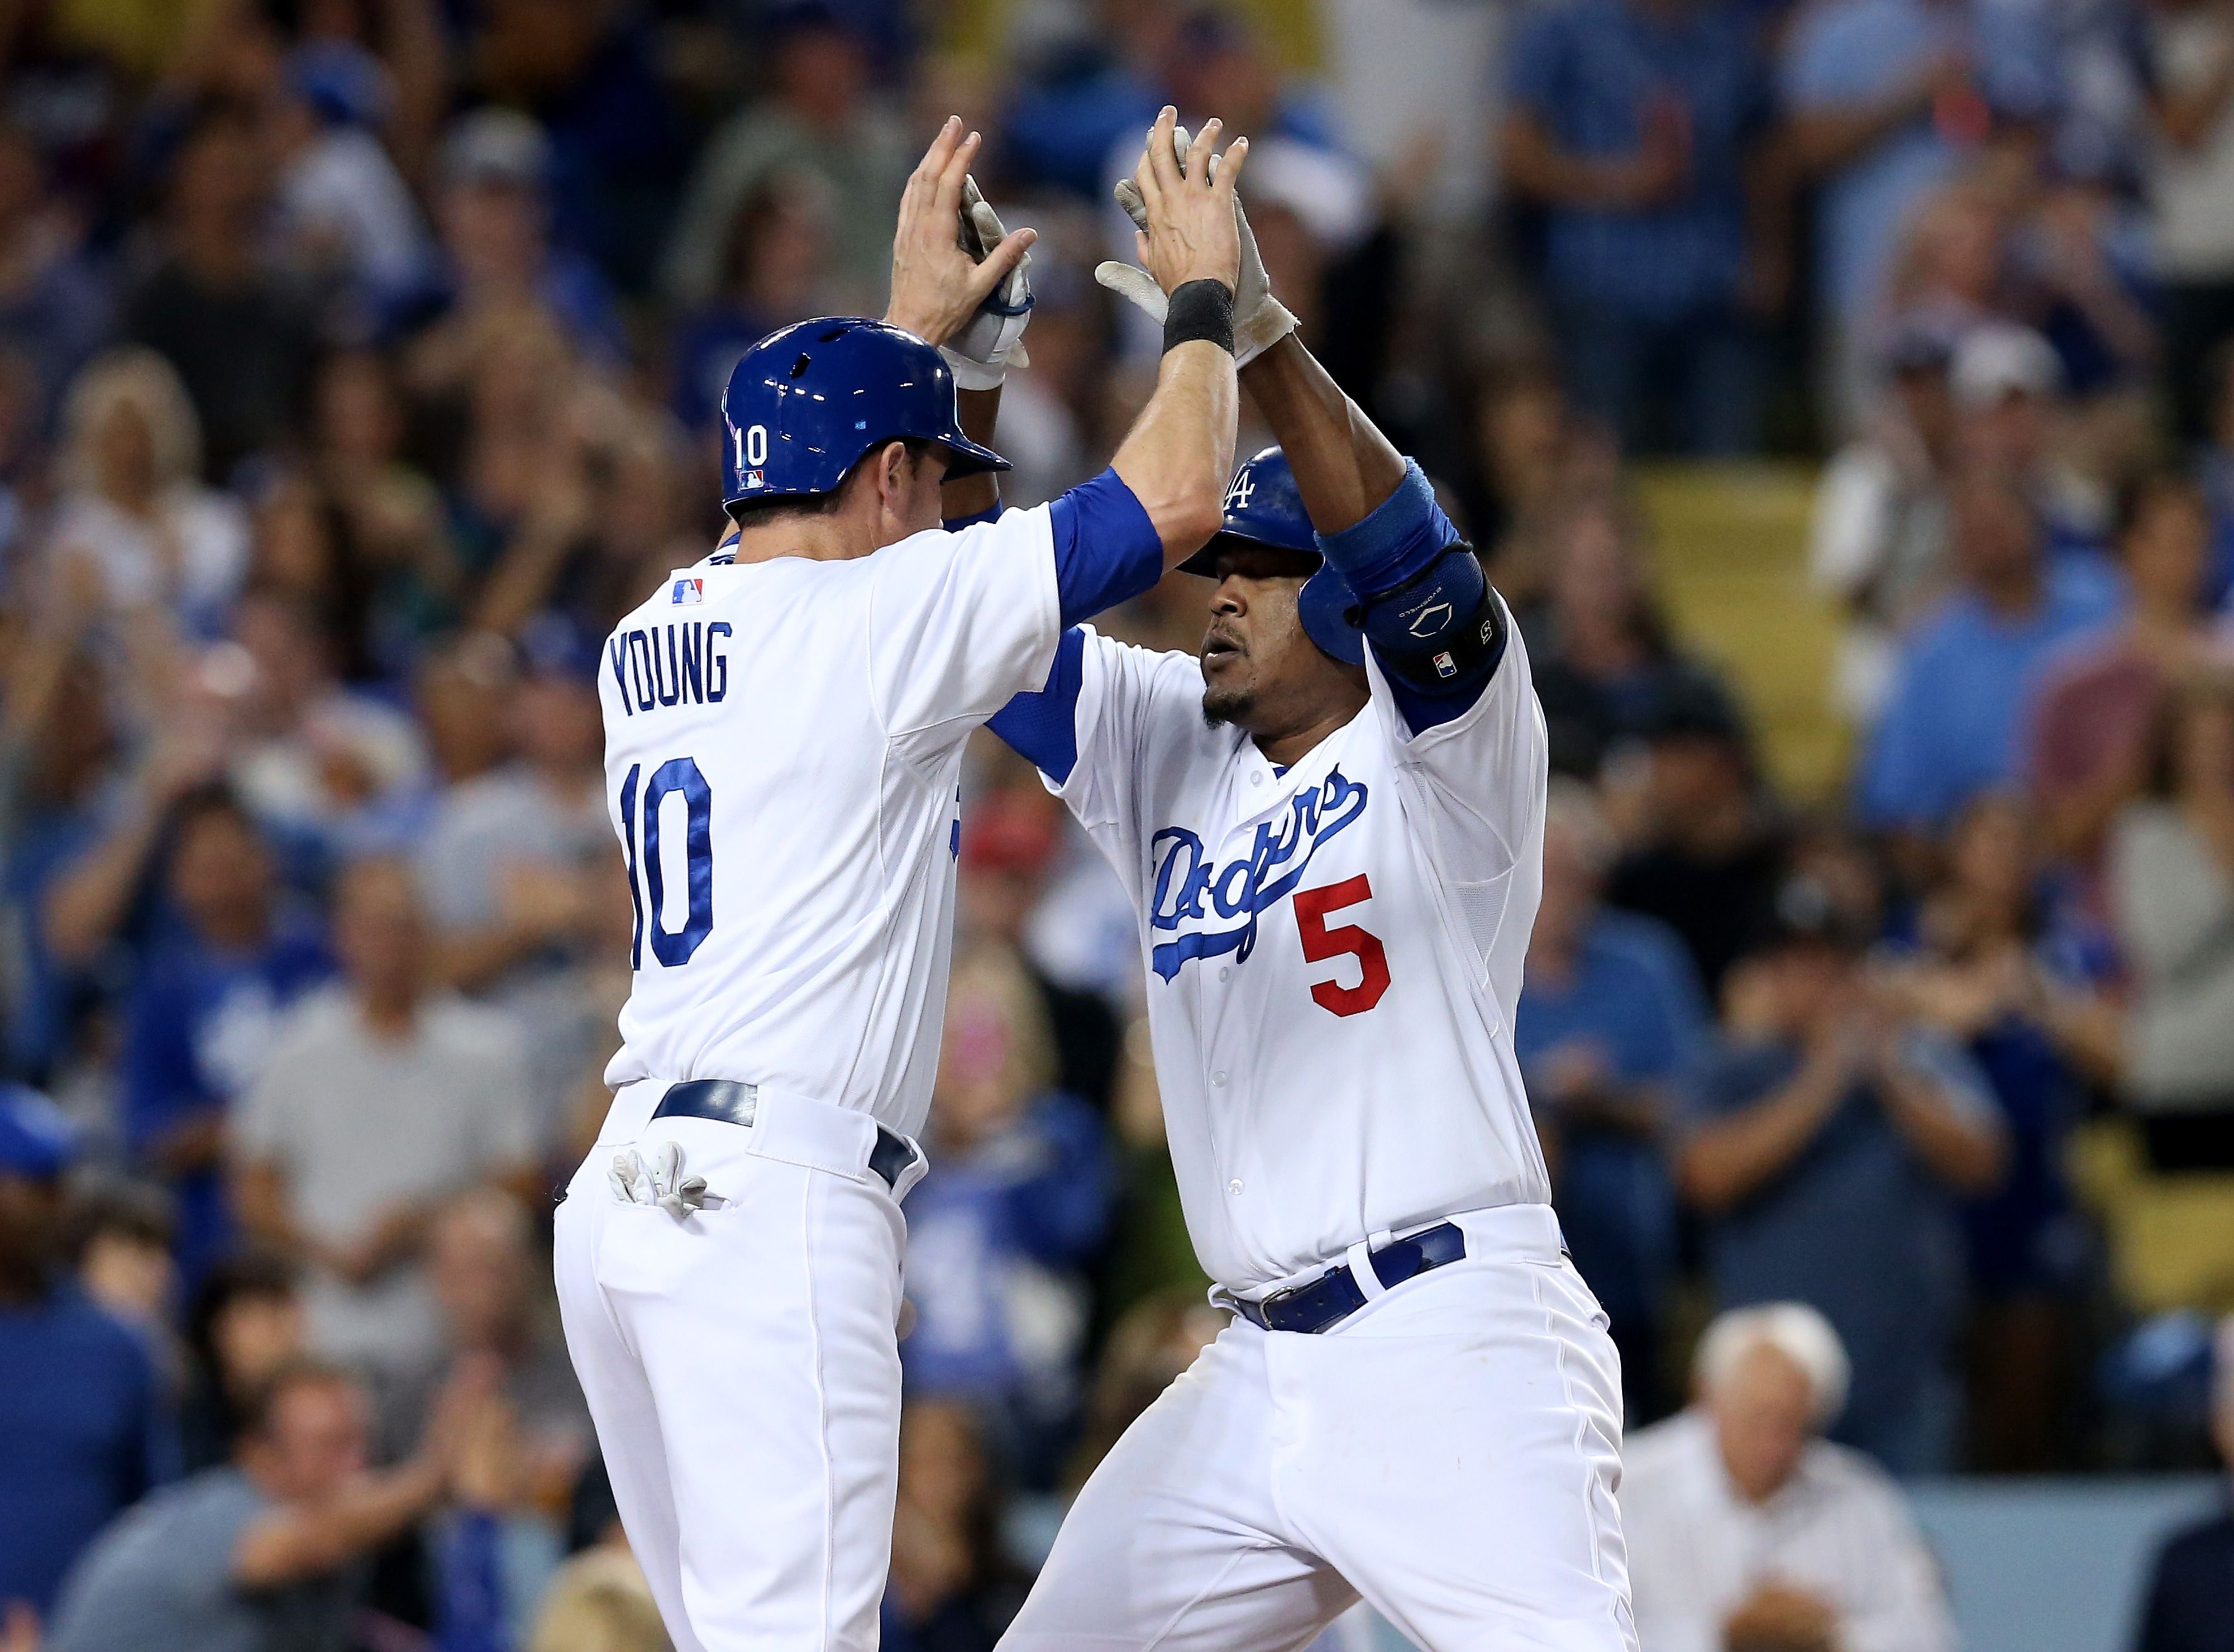 Juan Uribe is one of the reasons that lucrative spending isn't the reason the Dodgers are in the playoff picture.